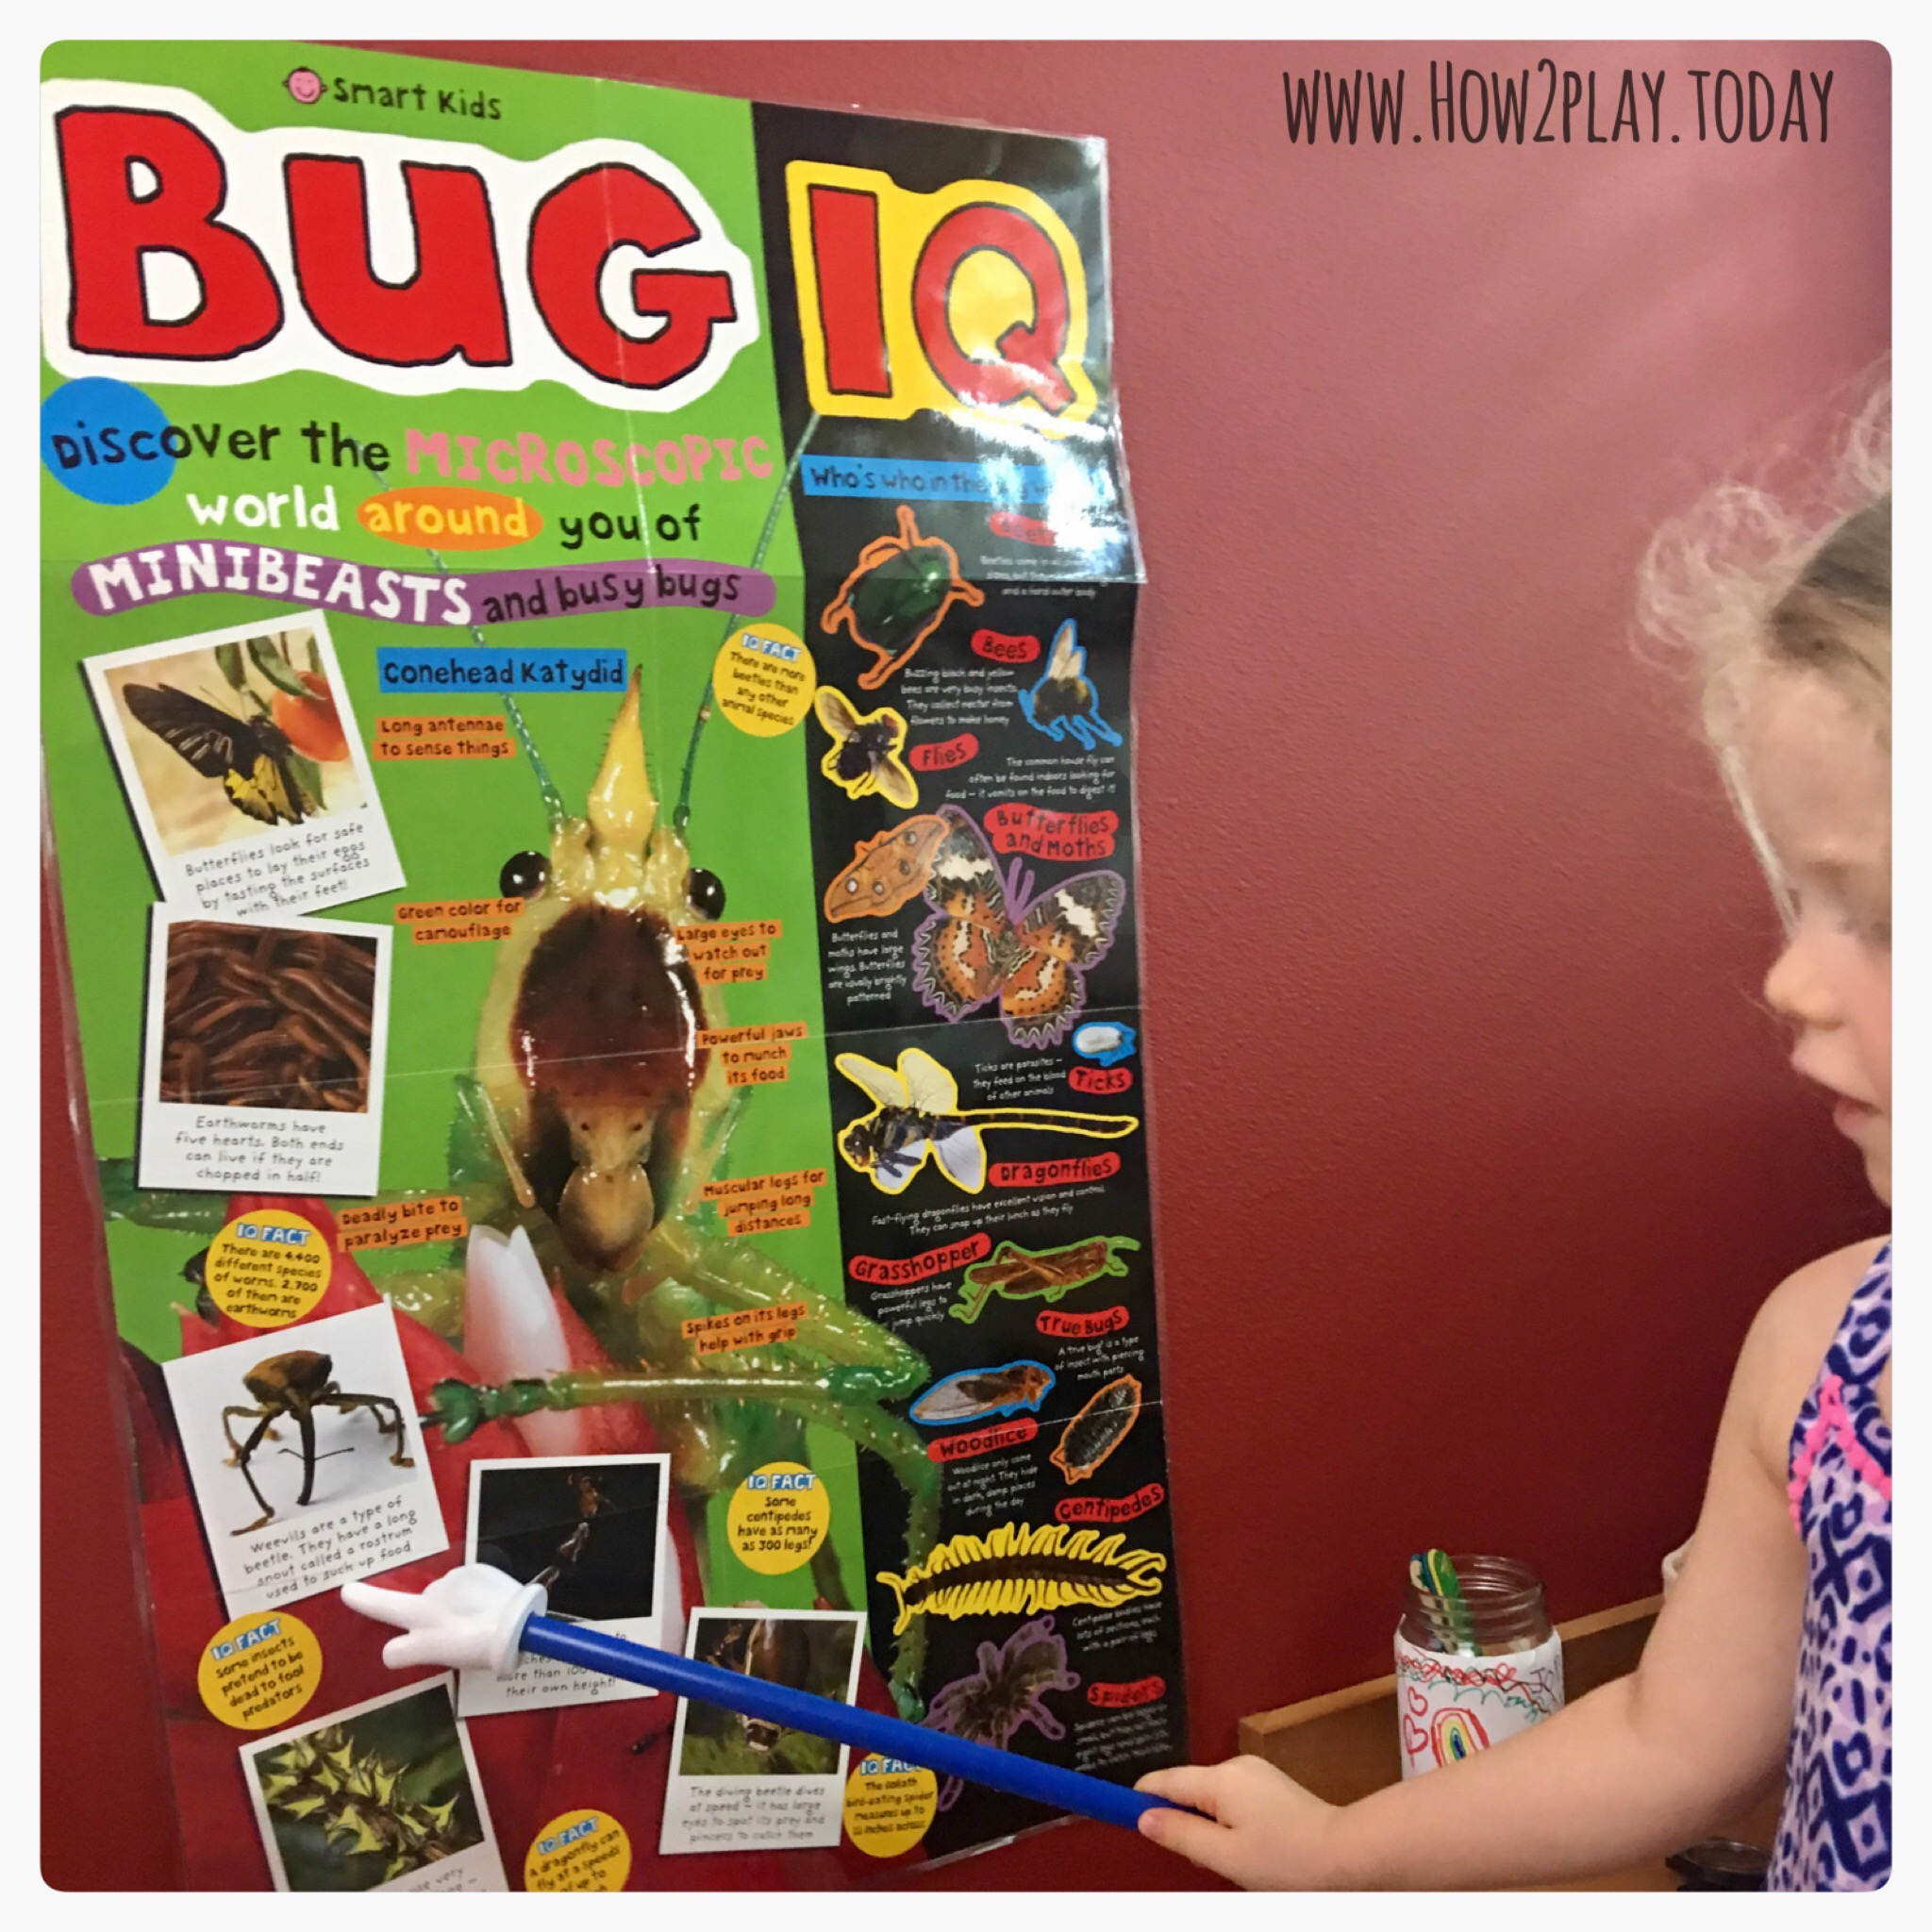 Bug IQ poster adds fun and facts to our Bugs and Crawly Things curriculum. @how2playtoday